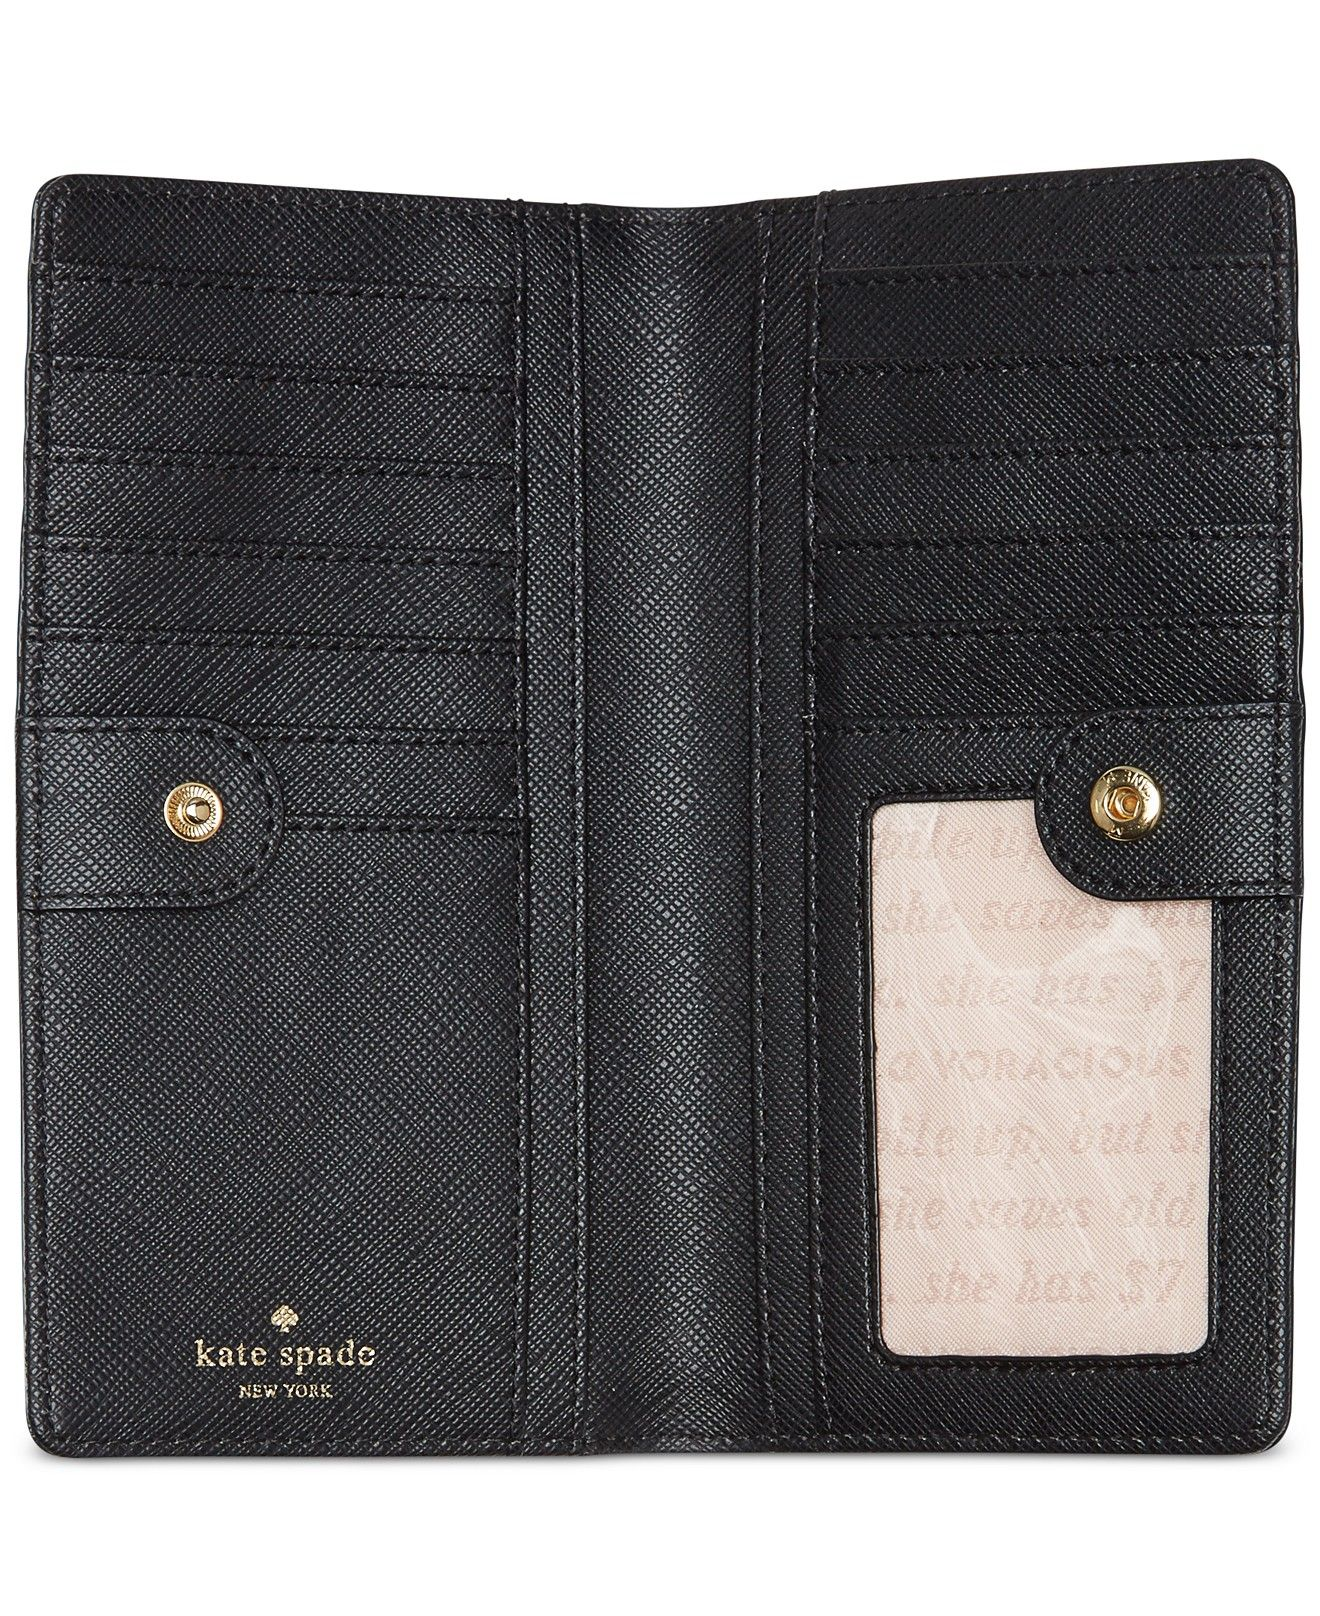 kate spade new york Sinclair Drive Stacy Continental Wallet - Handbags & Accessories - Macy's